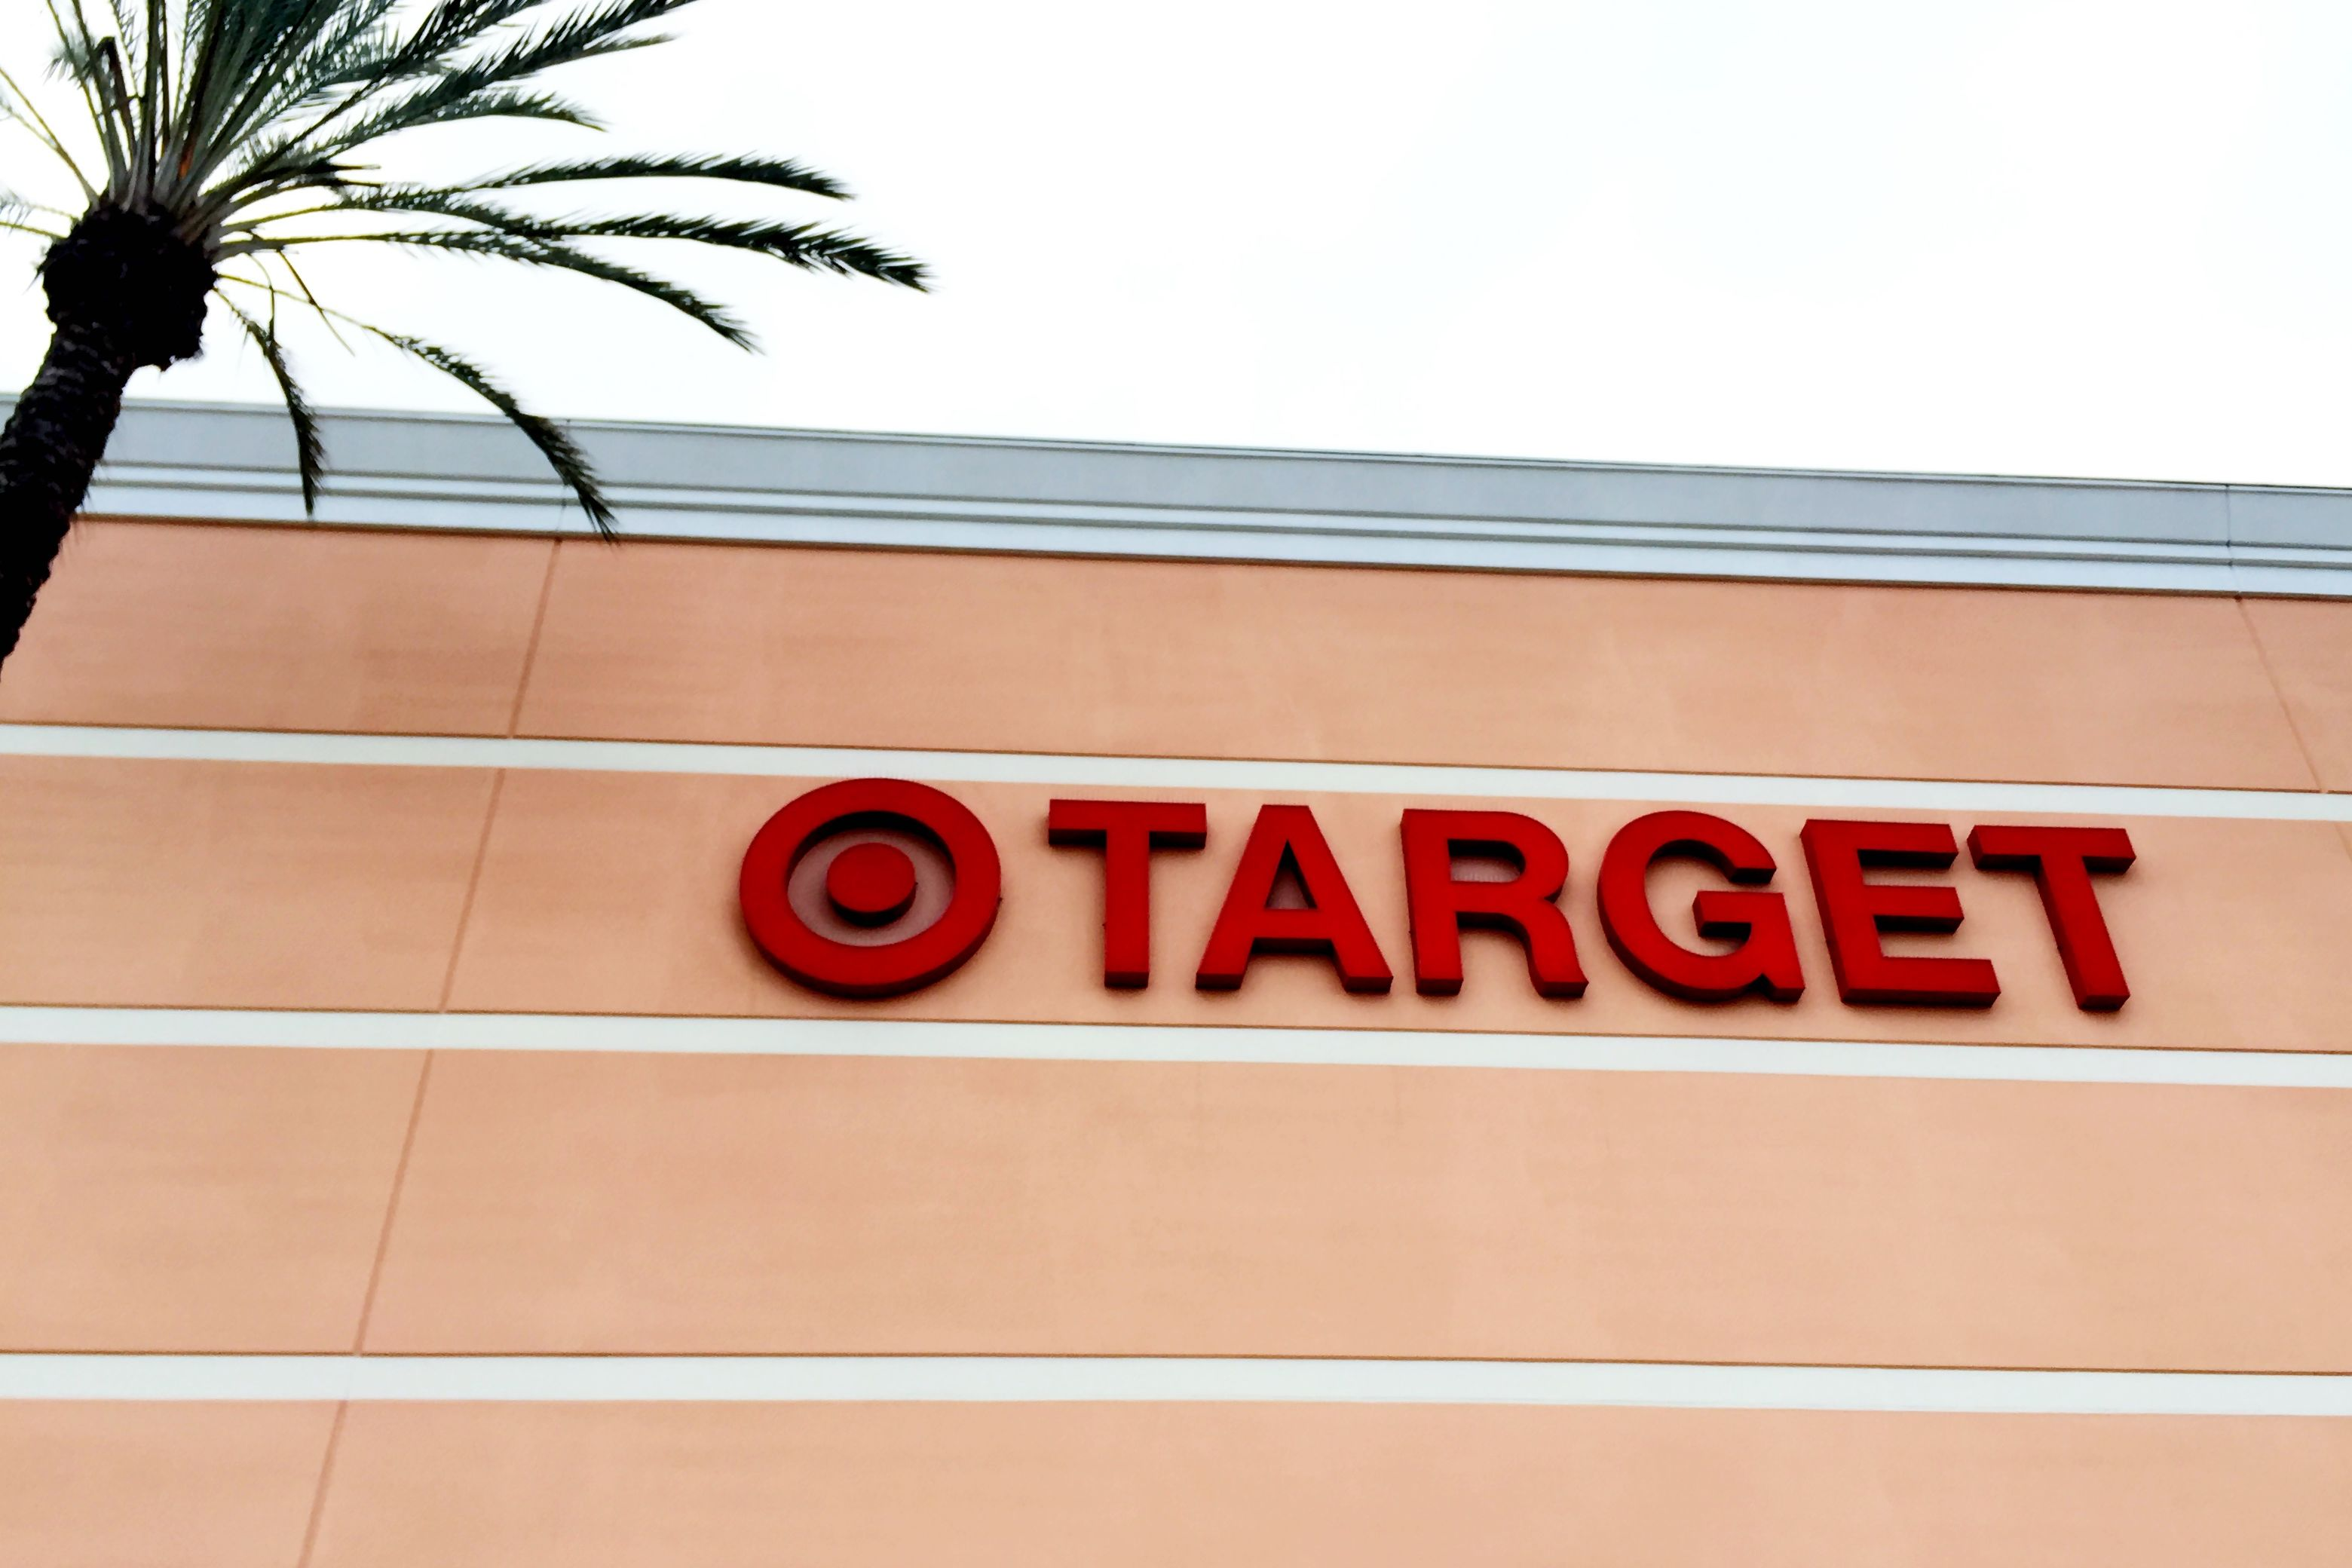 This May Be The Ultimate Tip to Save Money at Target